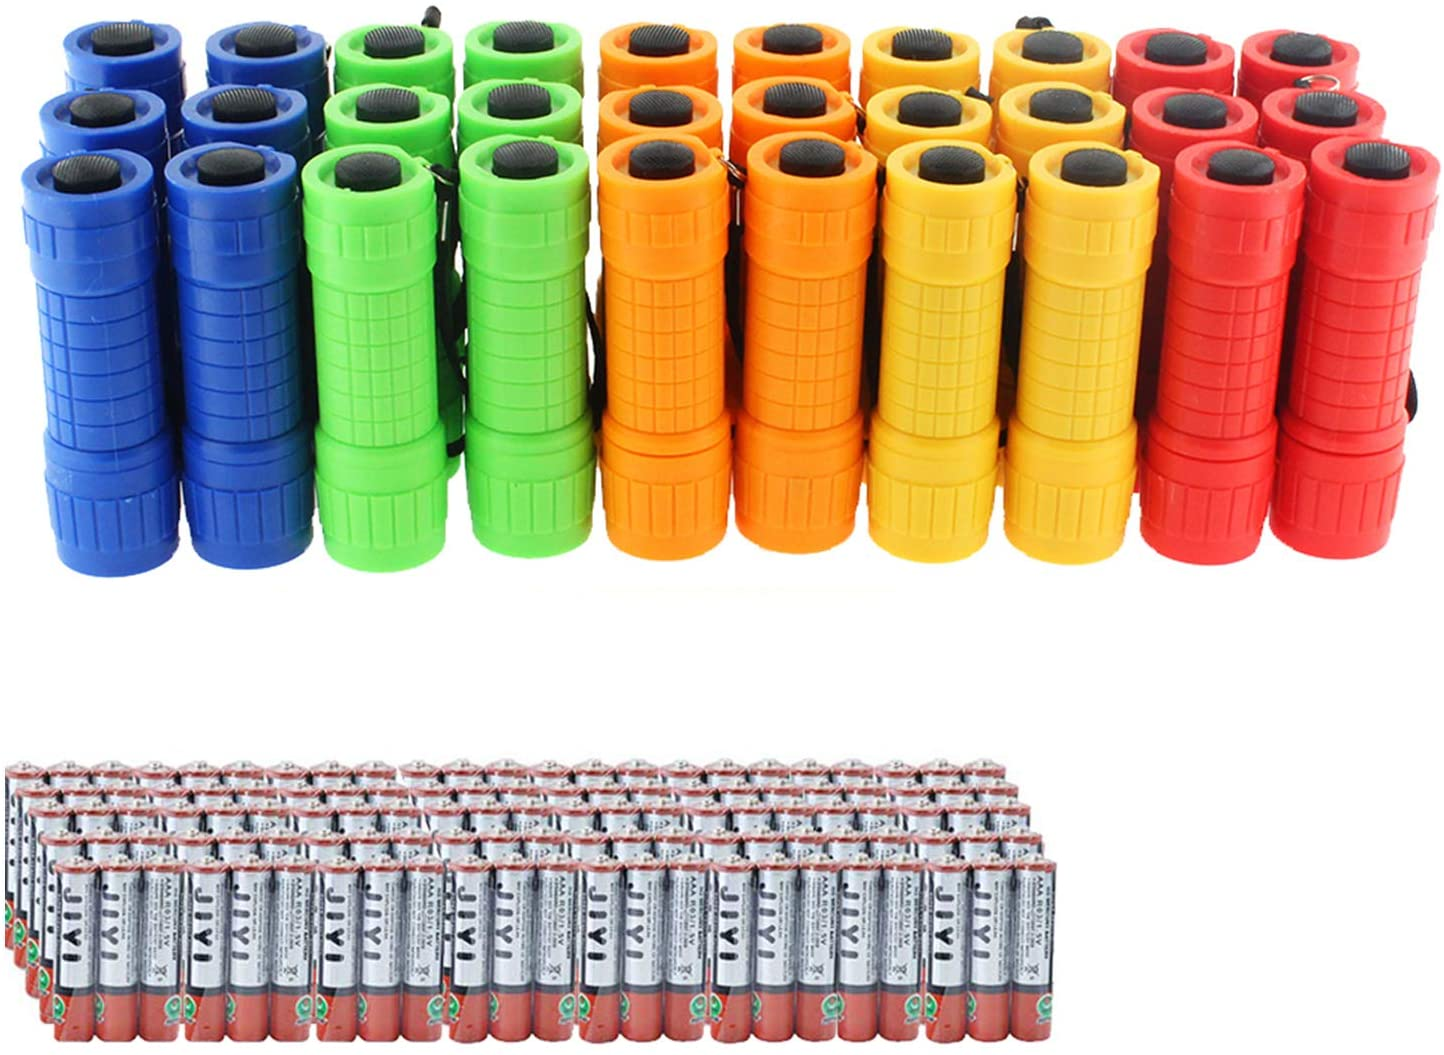 30-Pack Small Mini Flashlight Set, 5 Colors, COB LED Handheld flashlight with Lanyard,90-Pack AAA Battery Included for Kids/Night Reading/Party/Camping/Emergency/Hunting